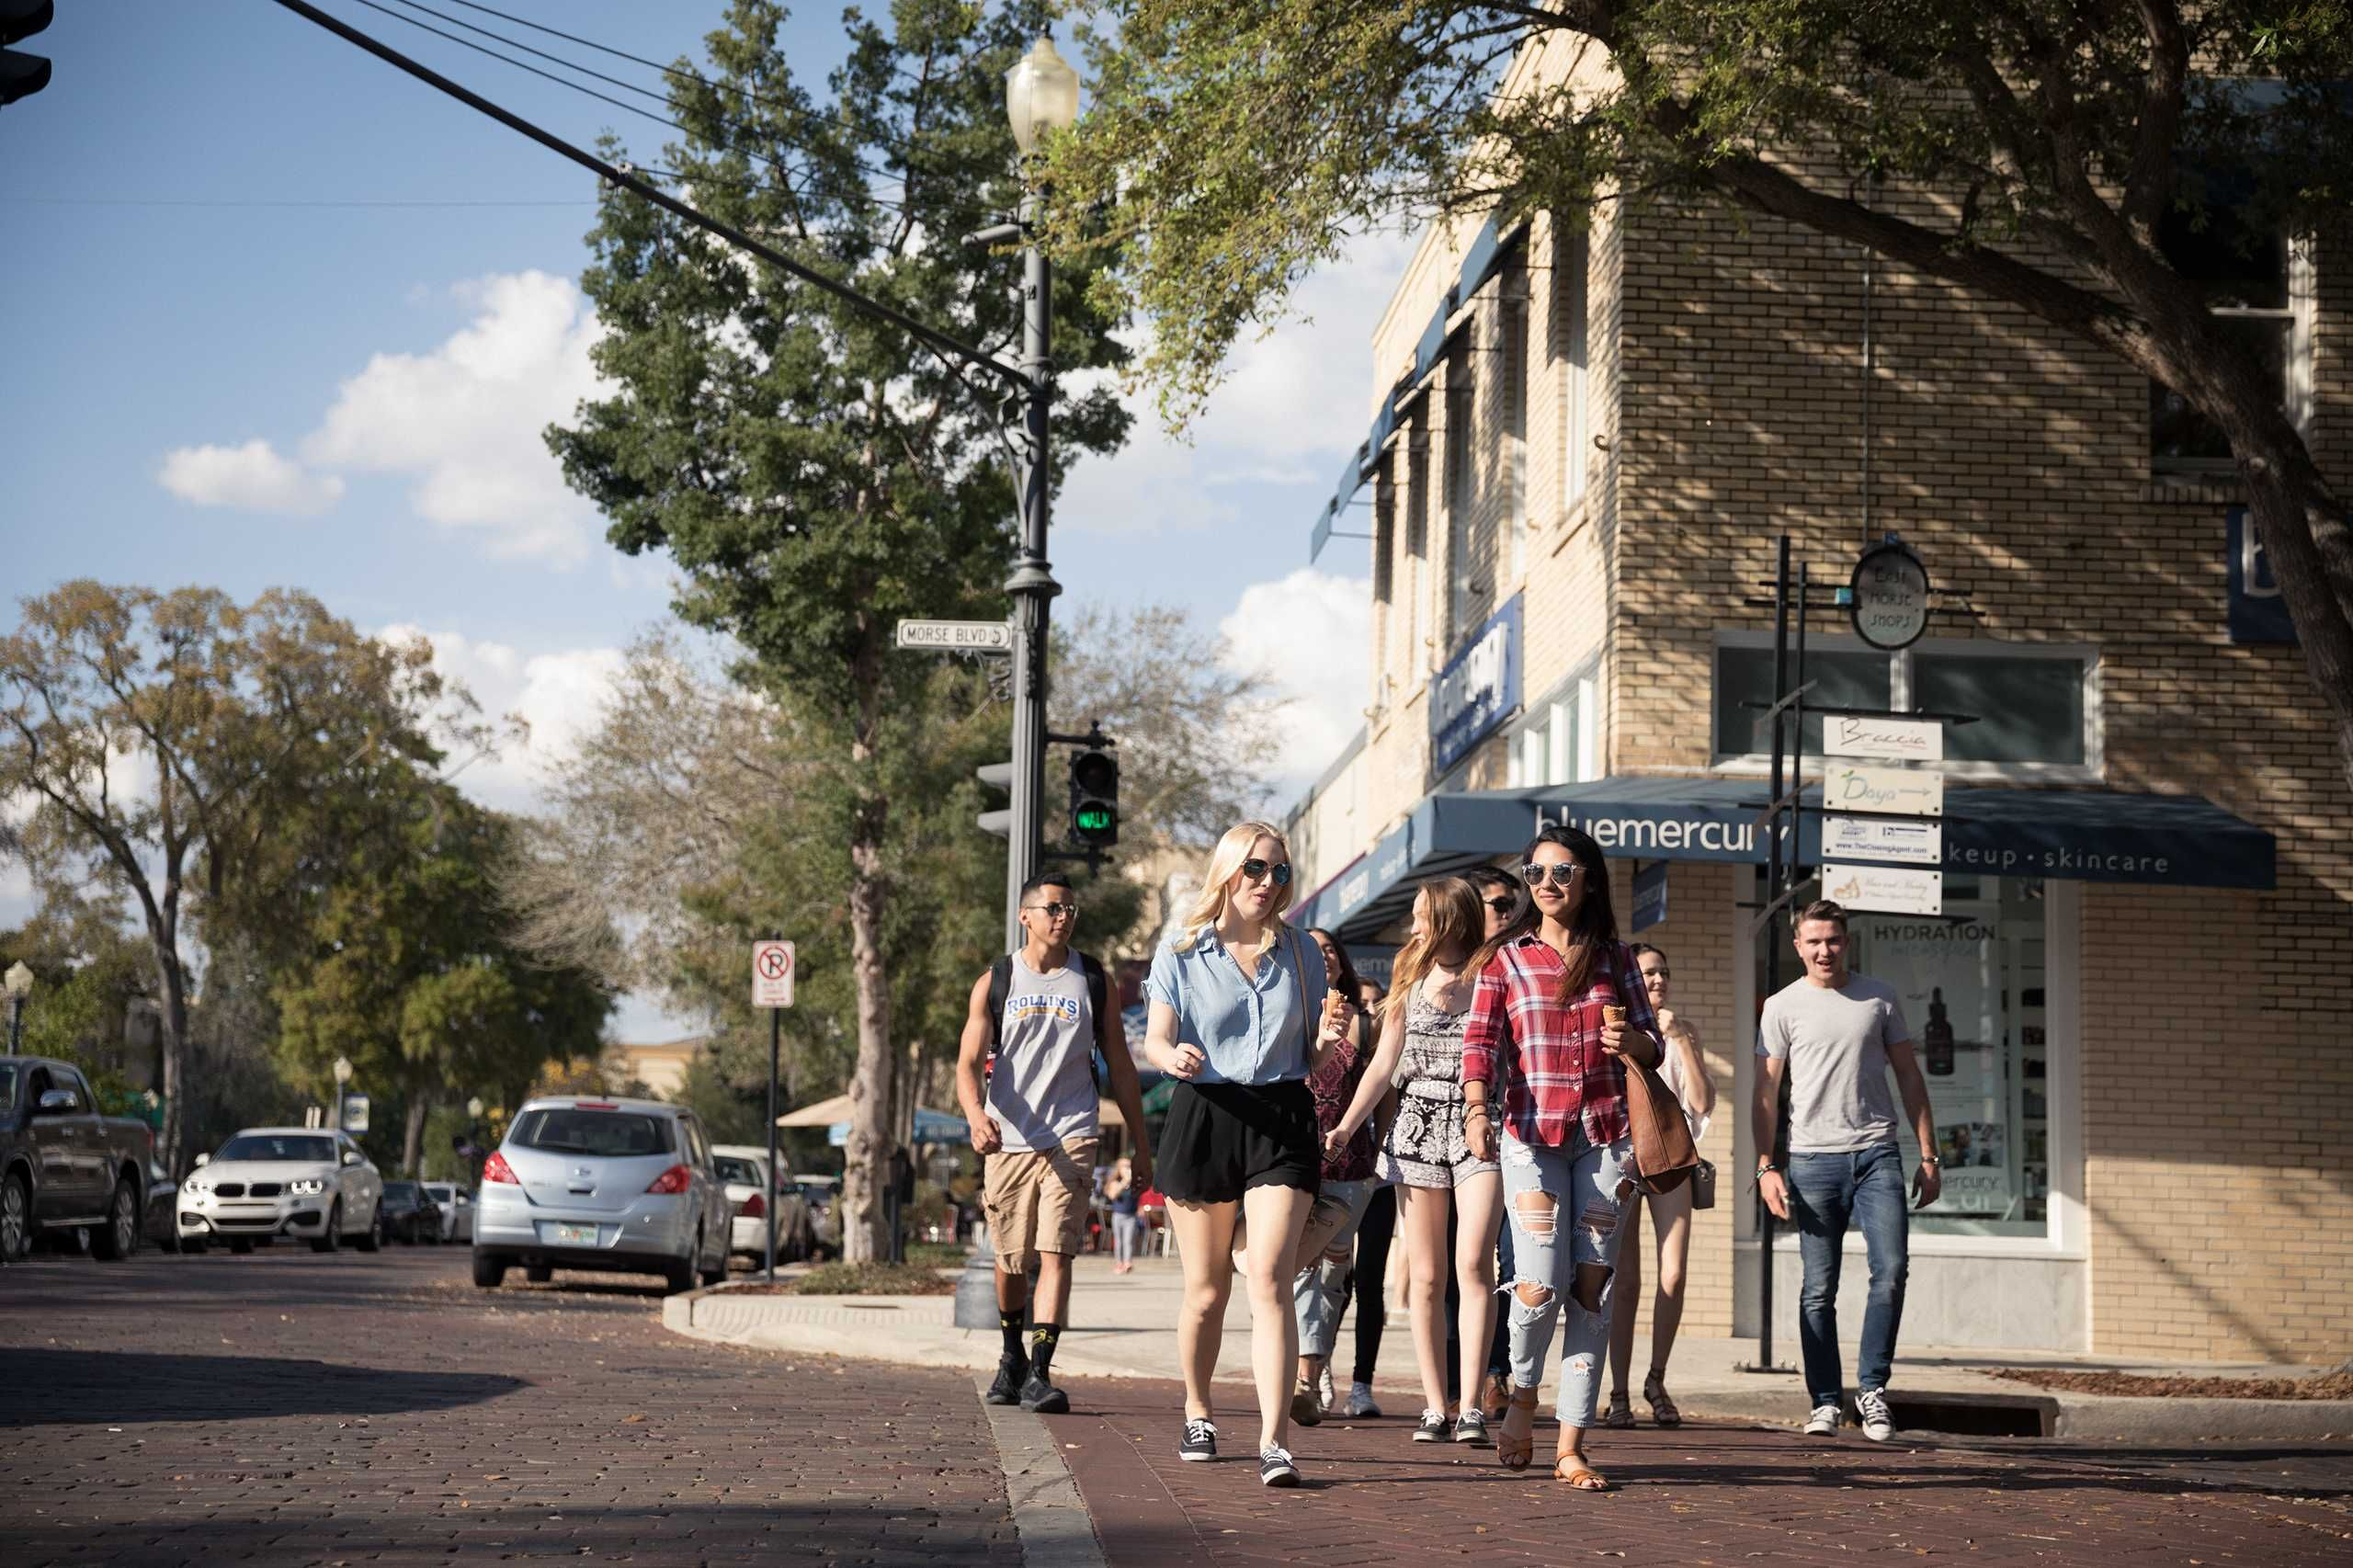 Students walk on Park Avenue in downtown Winter Park